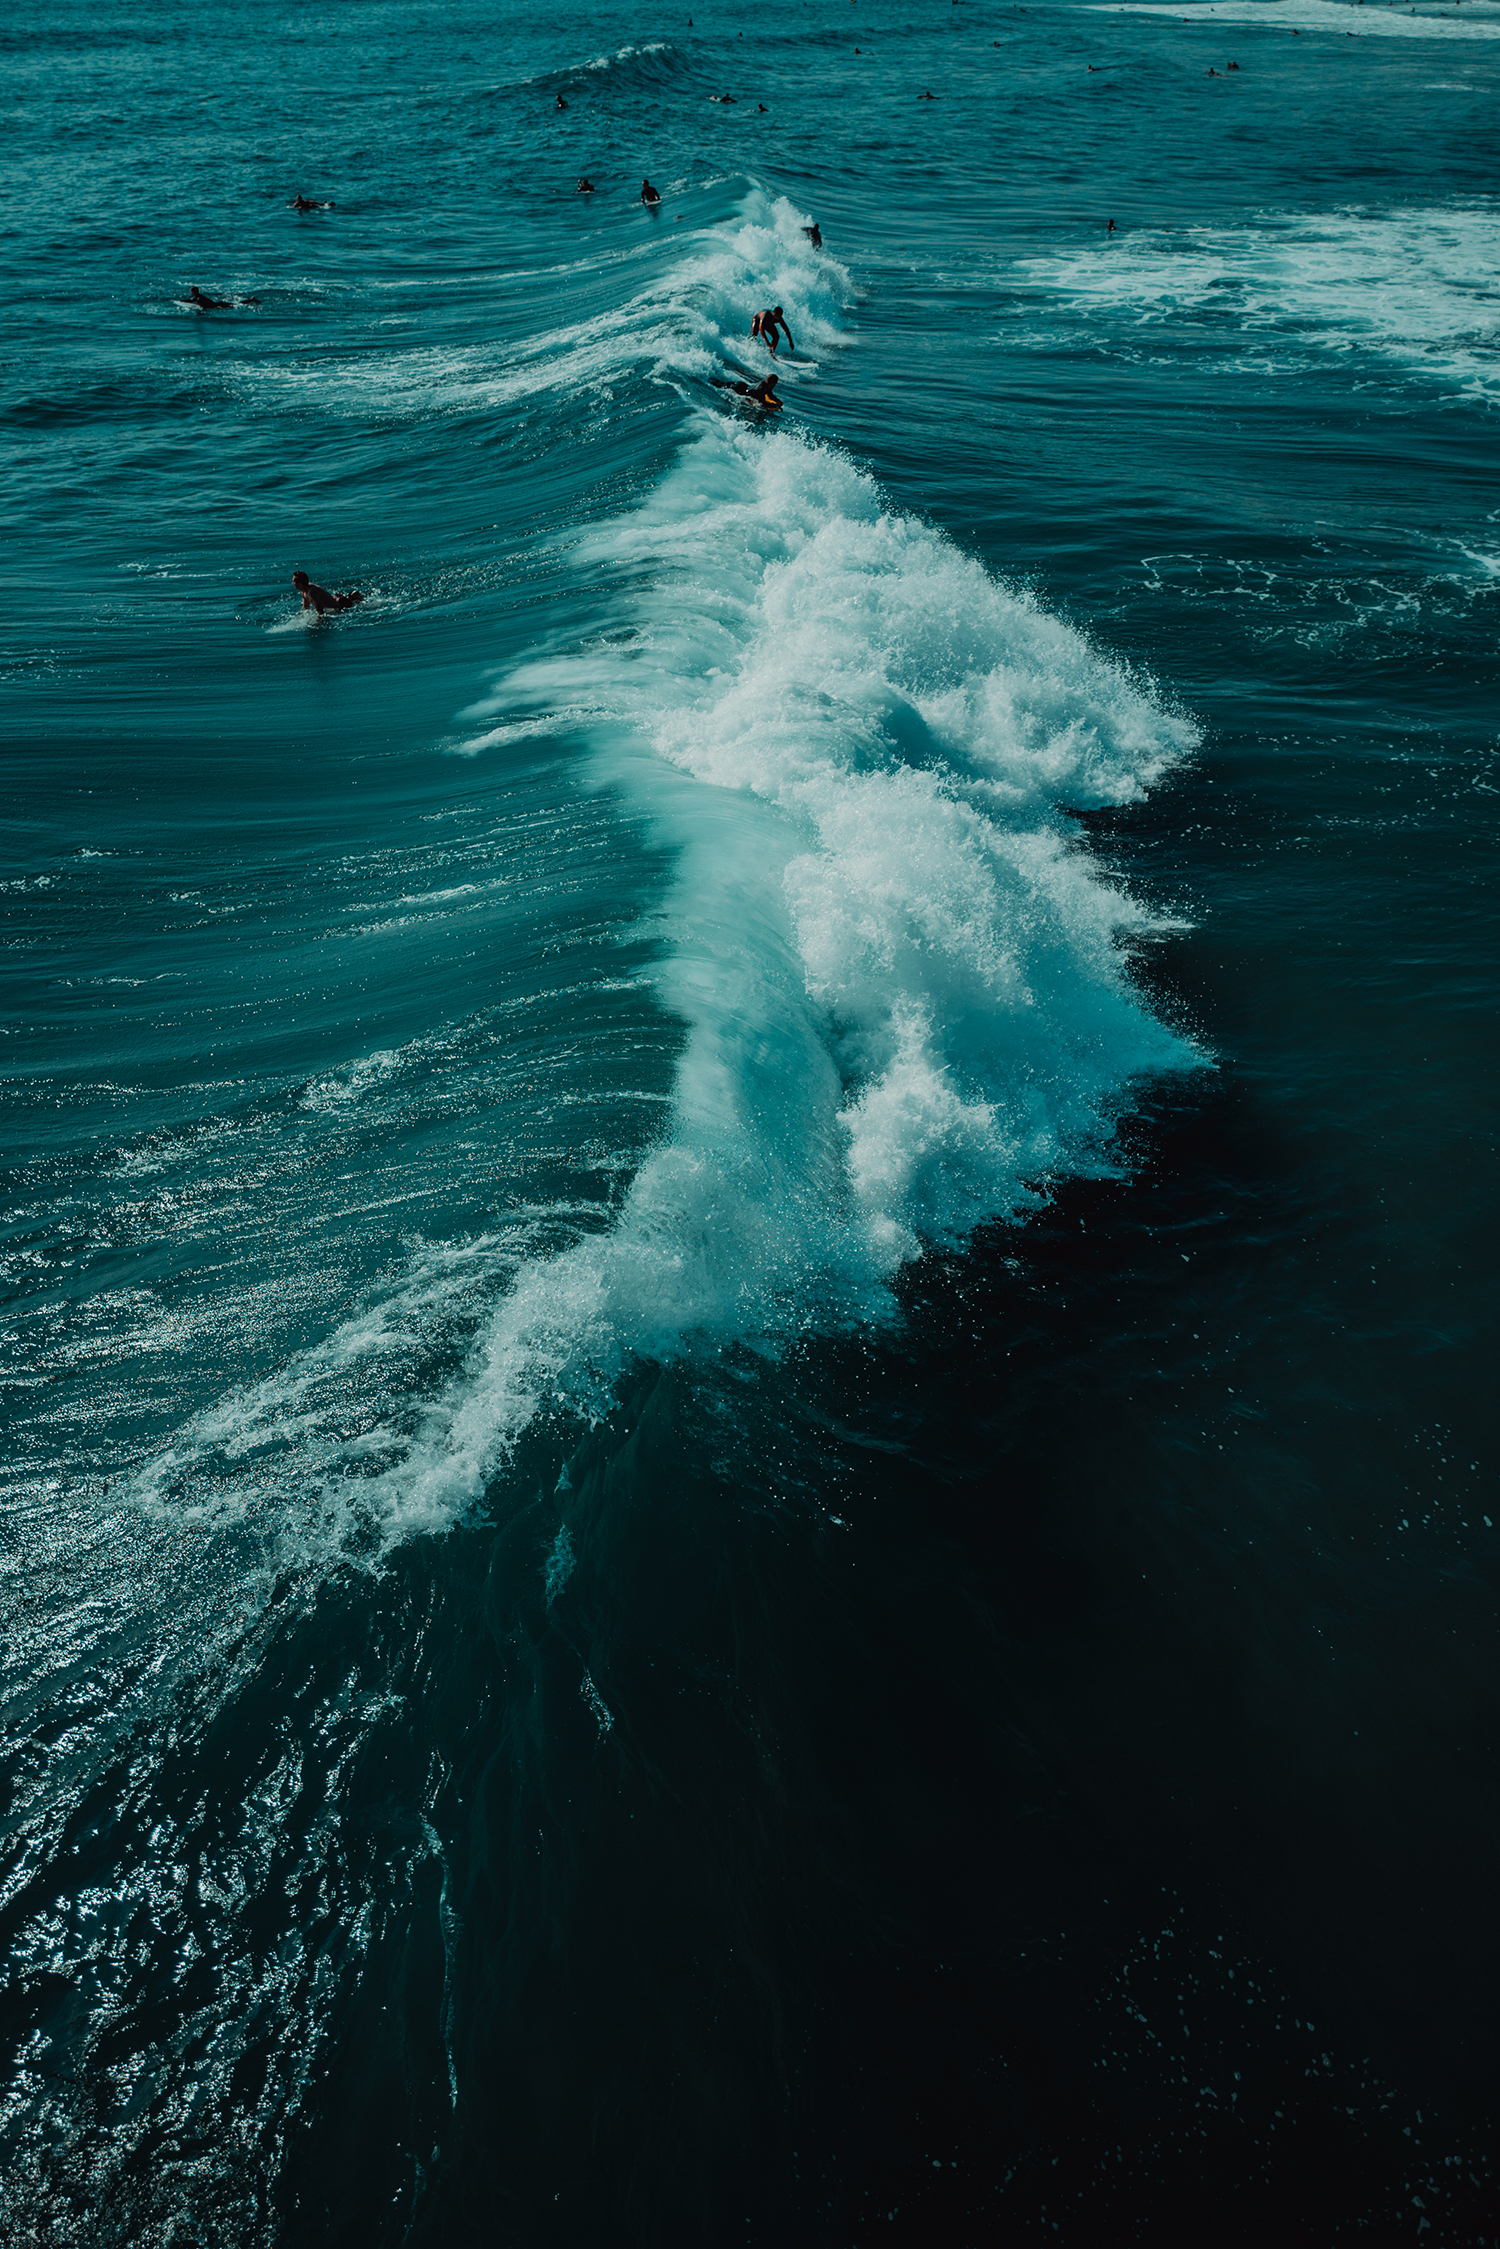 Surfers in the ocean